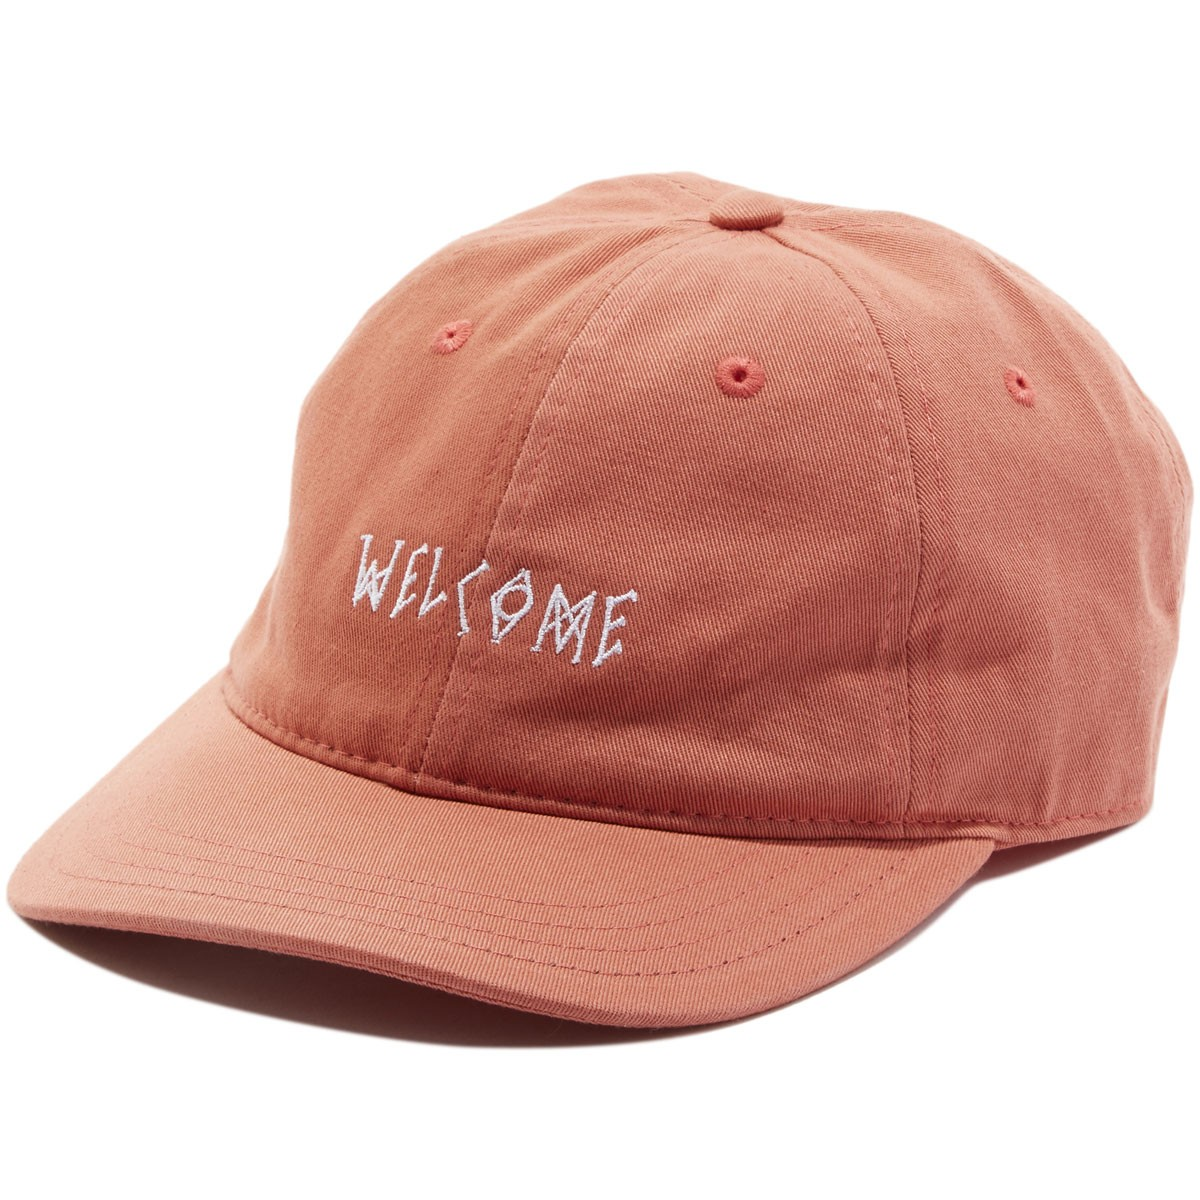 Welcome Scrawl Unstructured 6-Panel Slider Hat - Red